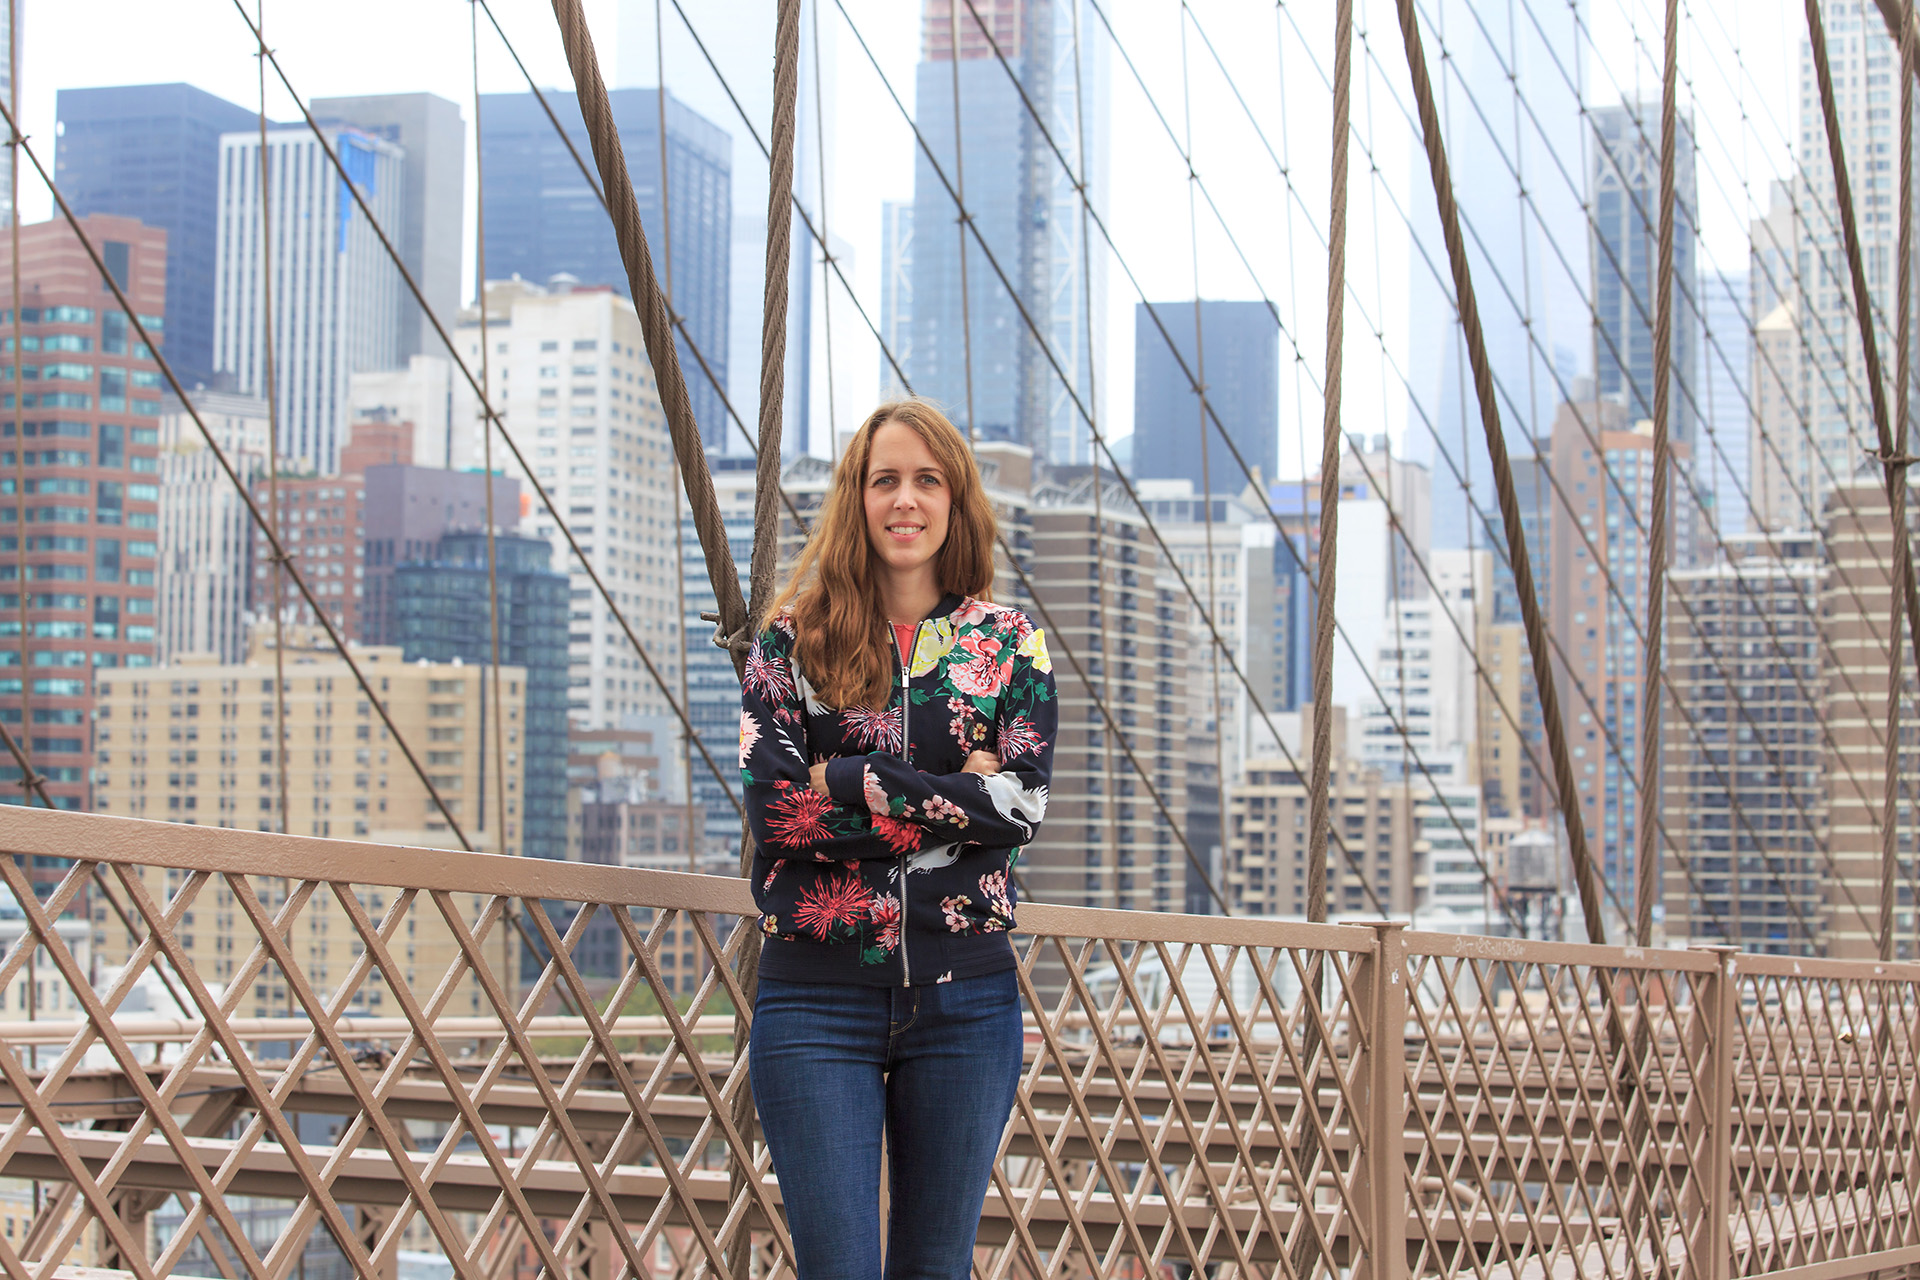 Brooklyn Bridge Malin New York Alexa Produktion